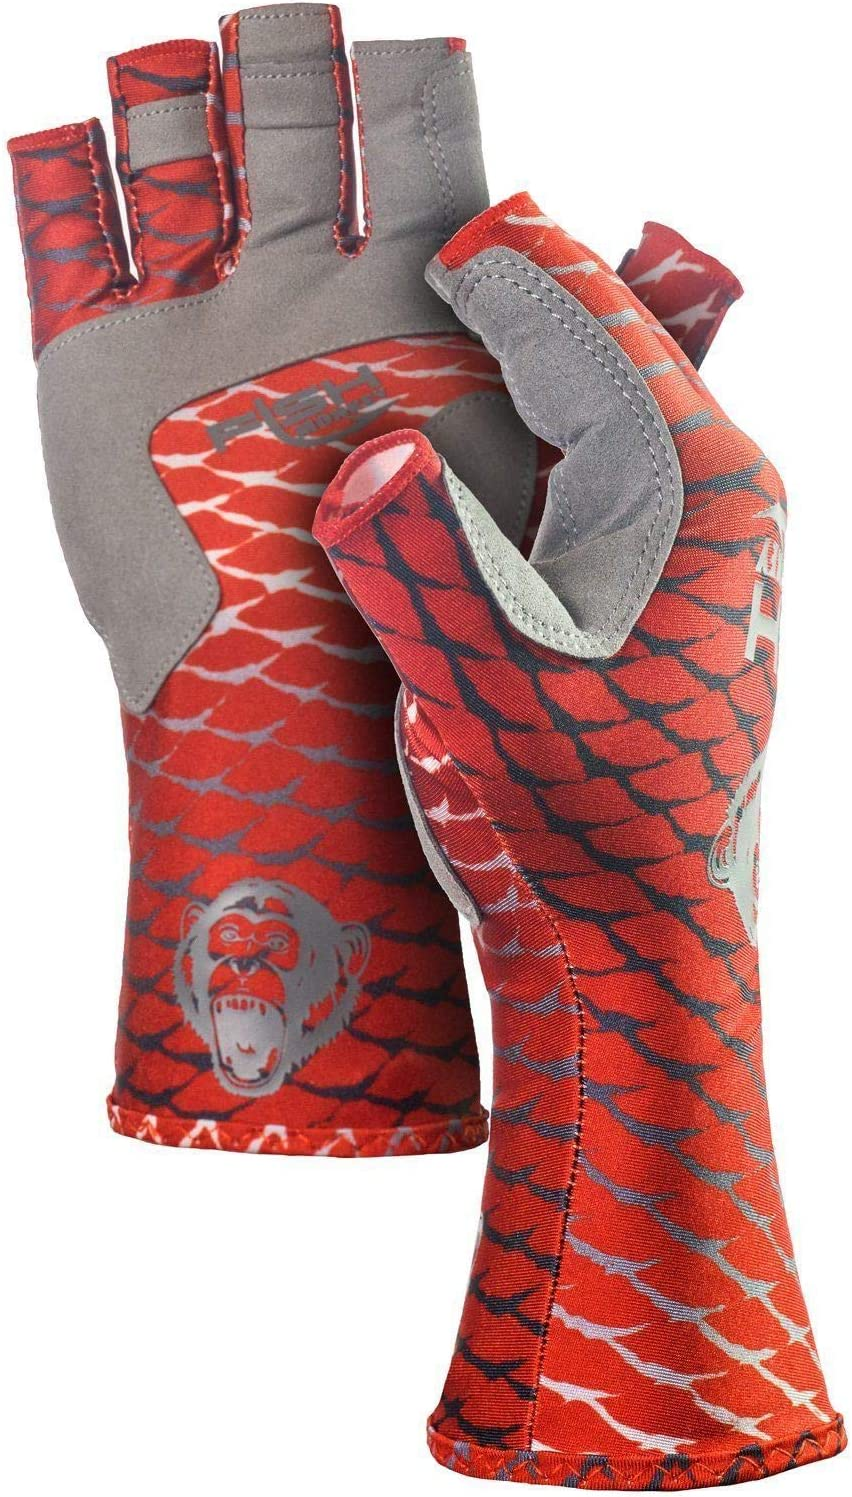 We OFFer at Low price cheap prices Fish Monkey FM11-REDFISH-M Half Finger Guide Glove Redfish M